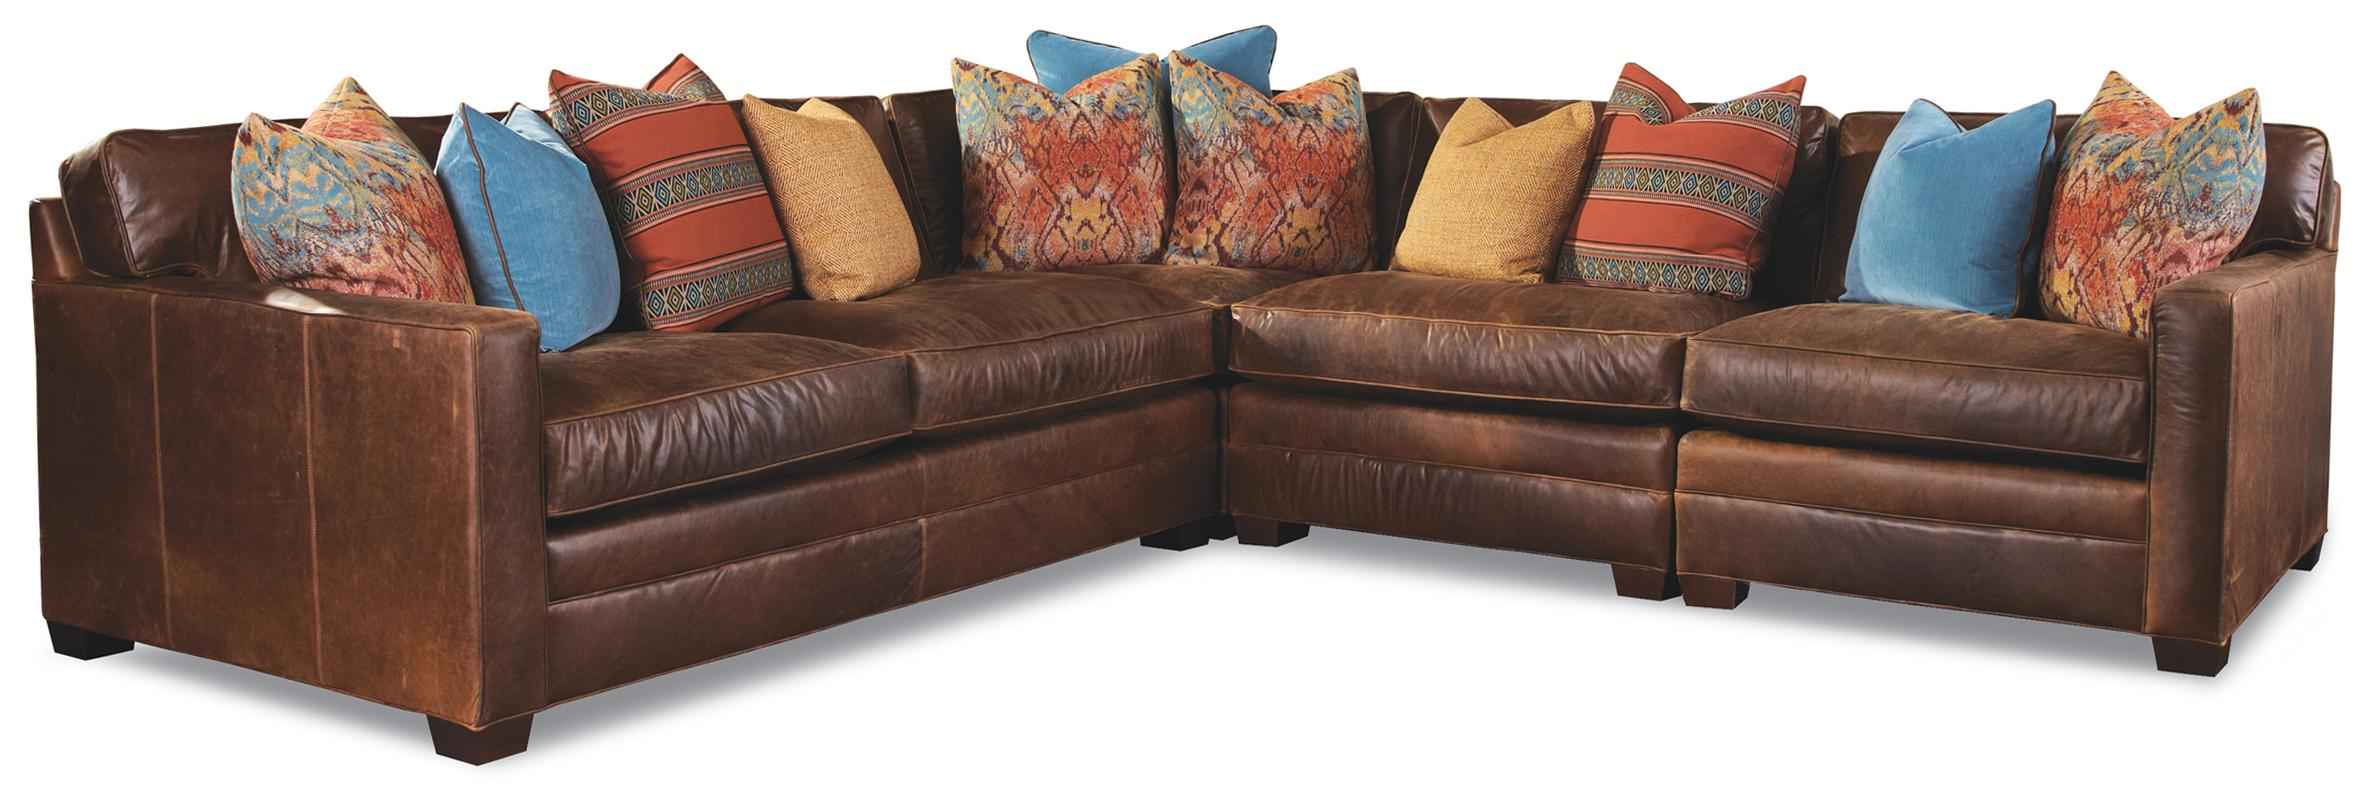 Huntington House 7164 Sectional - Item Number: 7164-43+31+51+52-LightBrownLeather